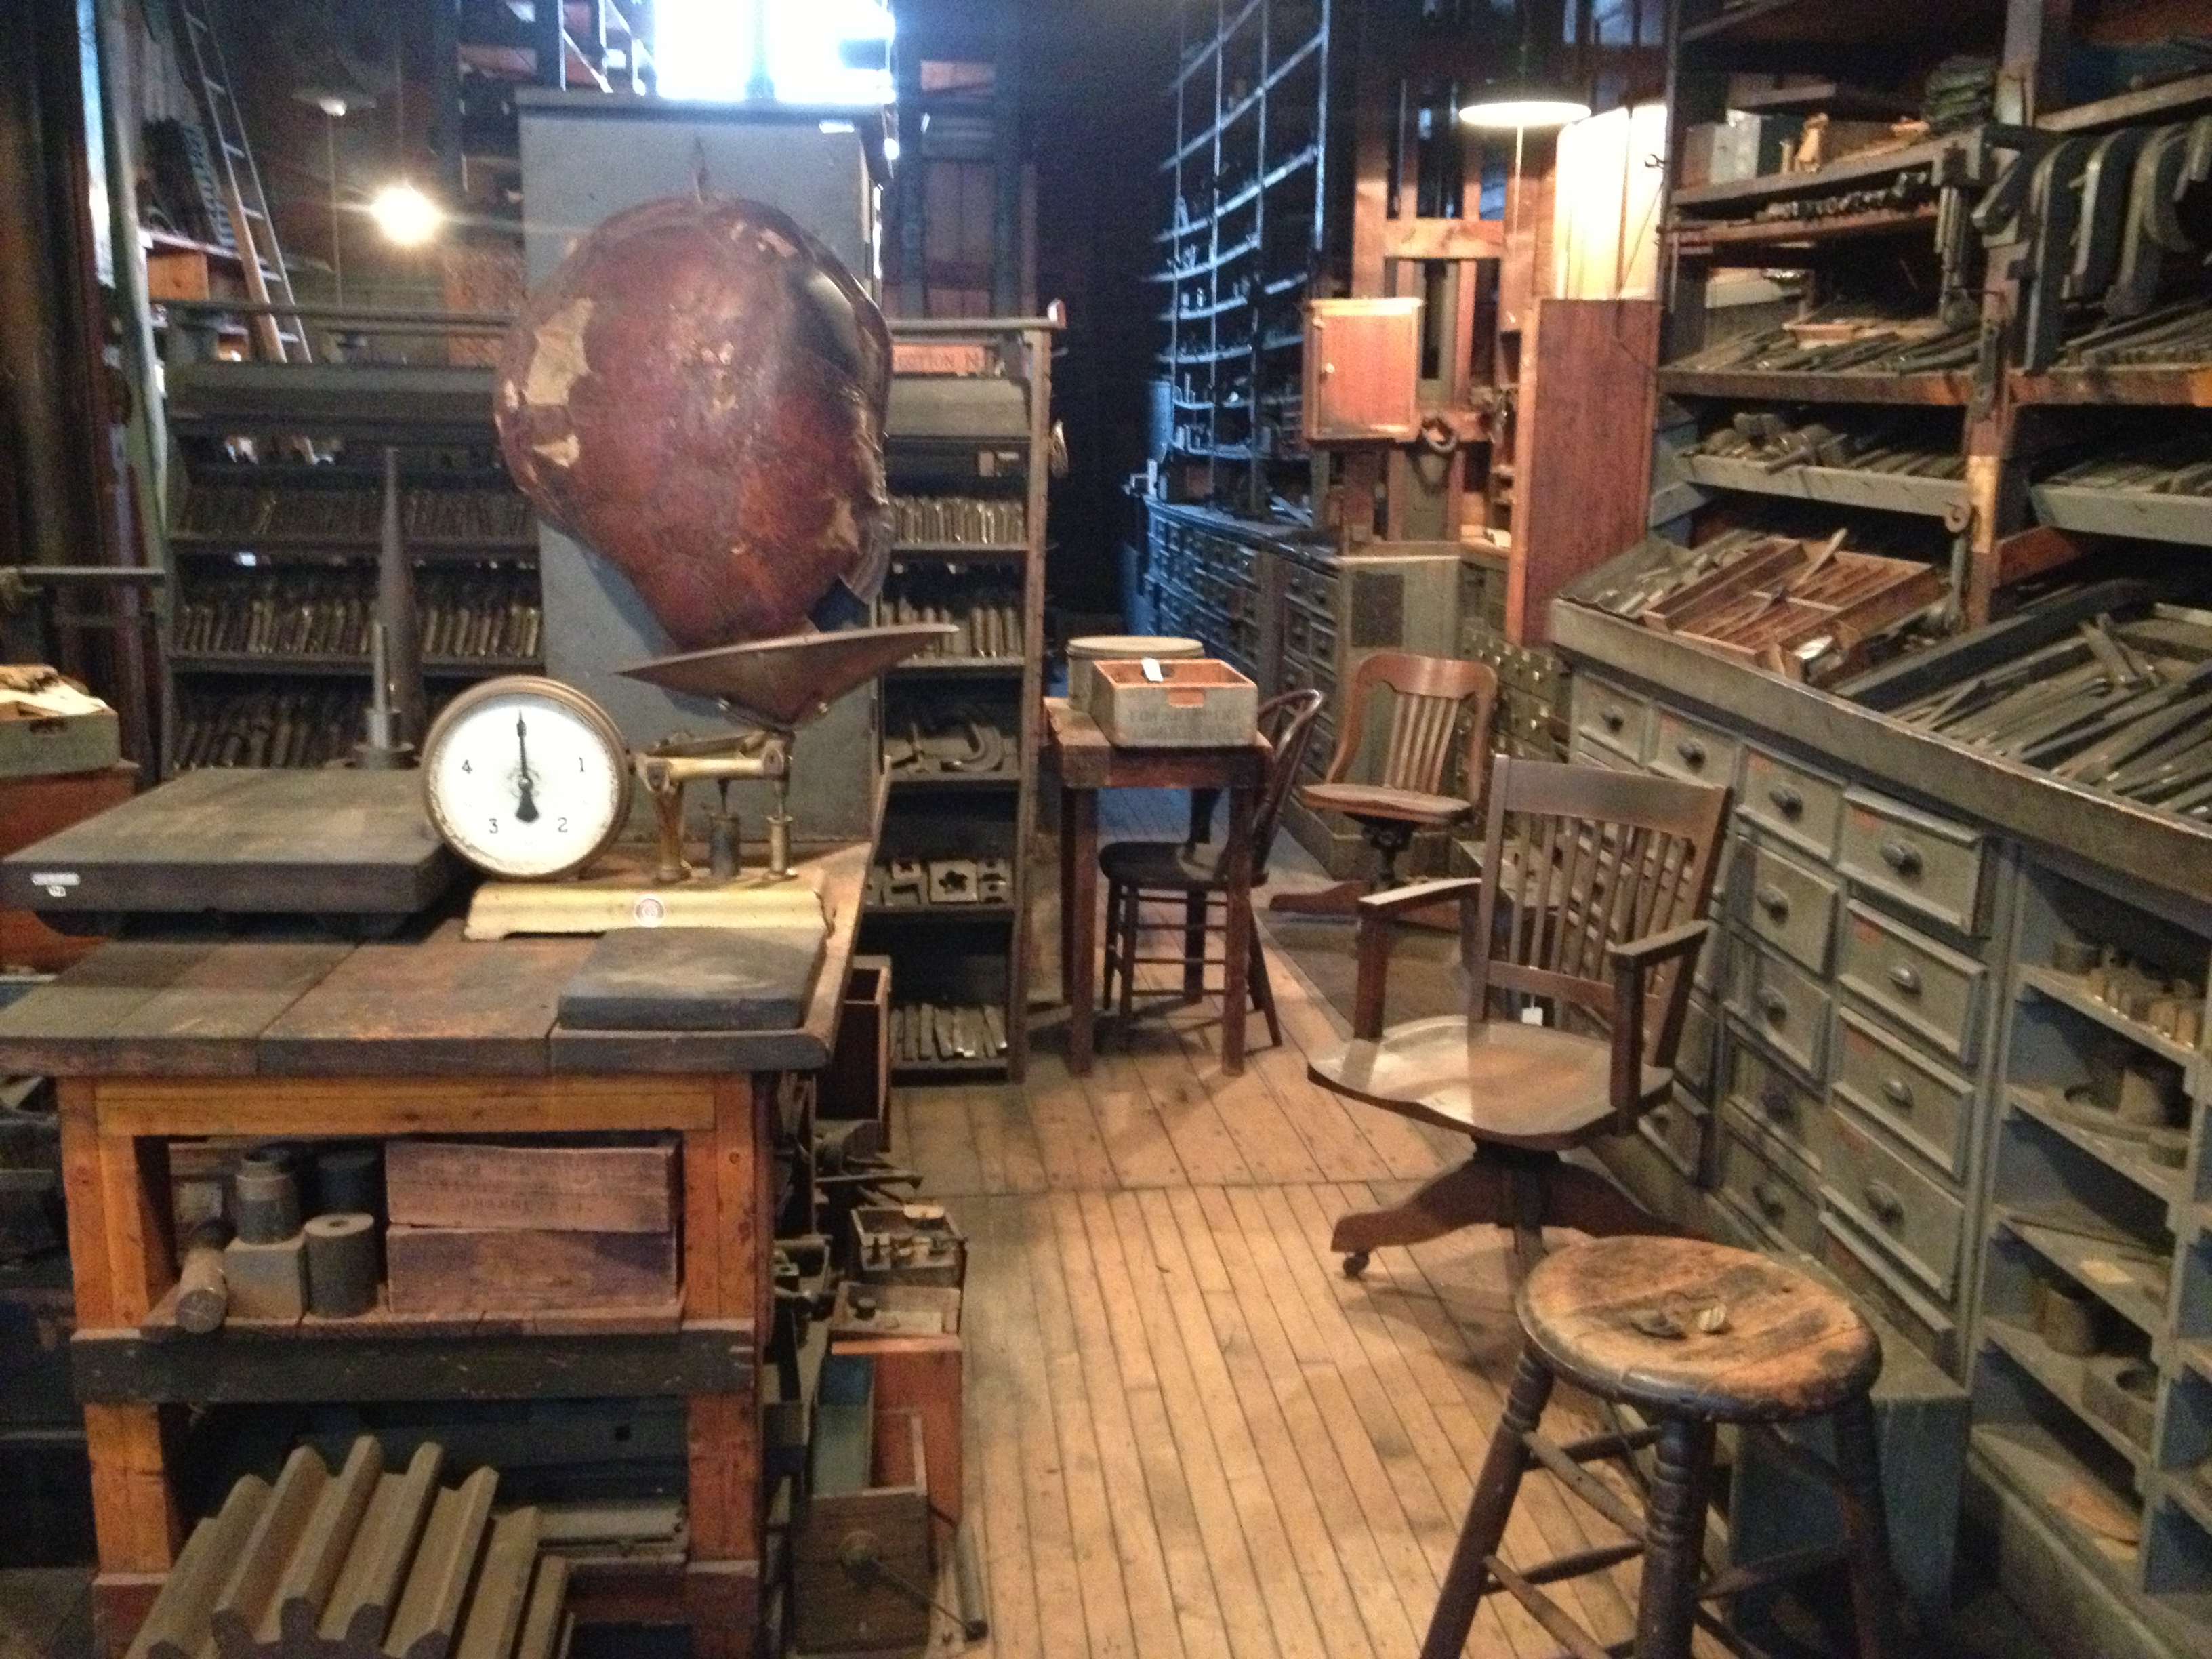 Part of the large storeroom at West Orange